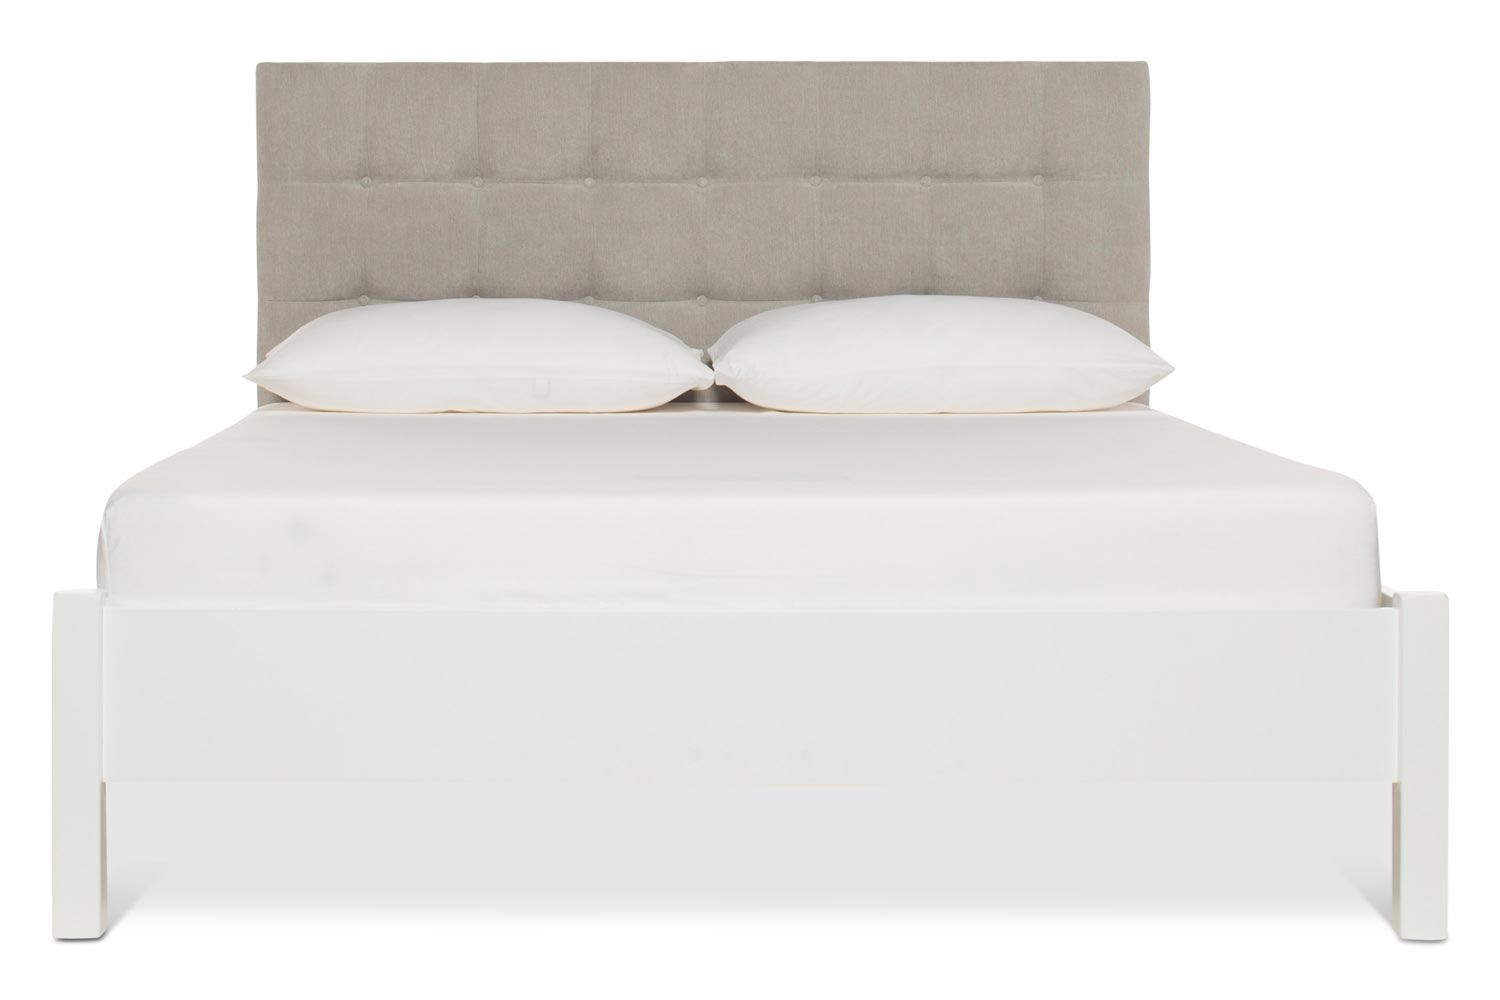 Emily Loft White Bed Frame | 4FT6 | Portland Headboard Silver